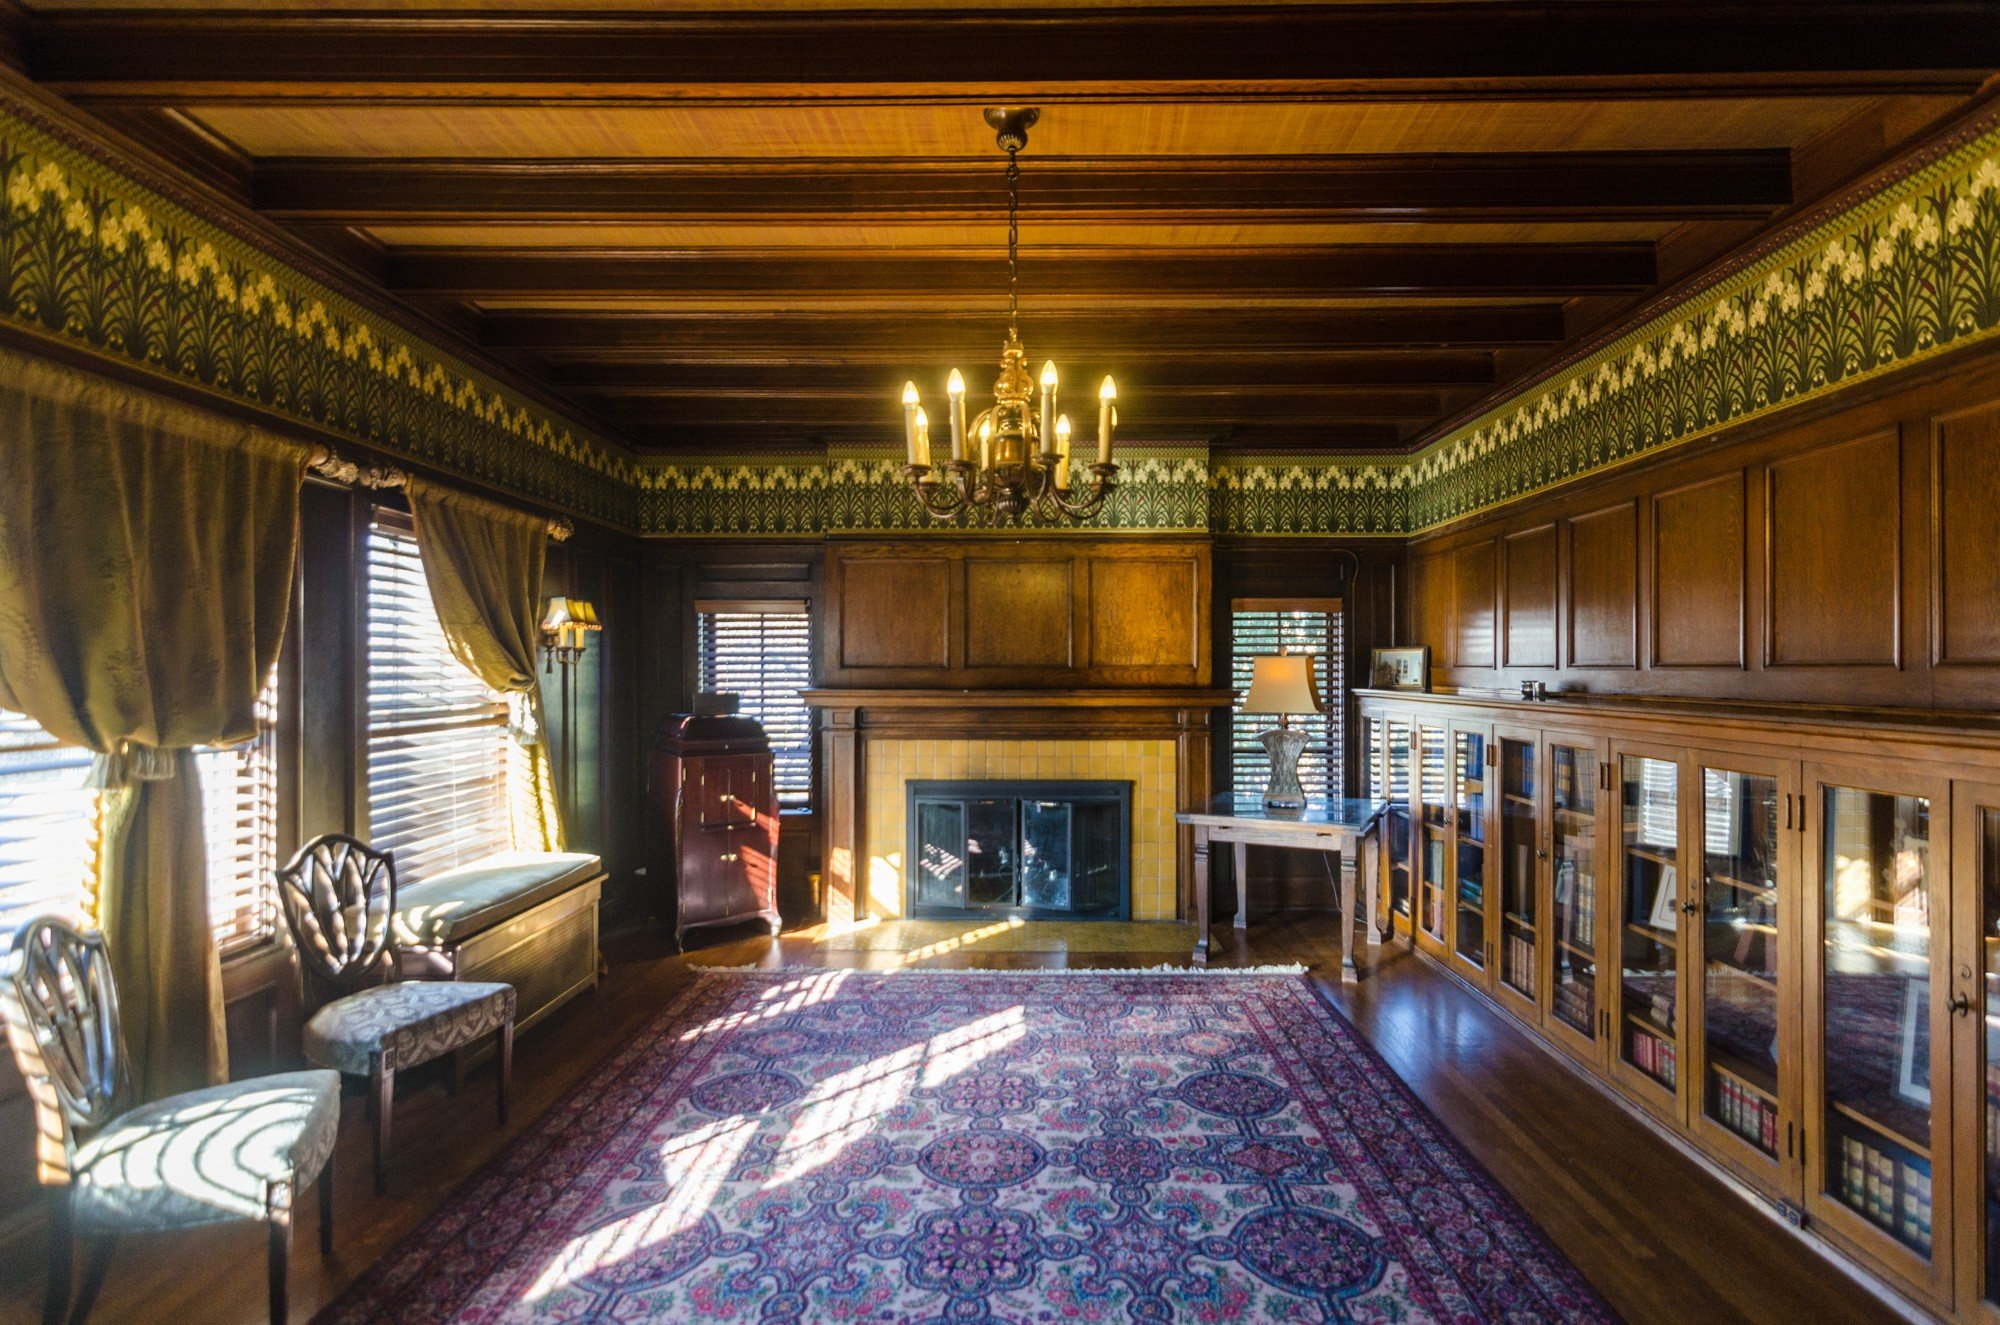 Cheney Mansion interior